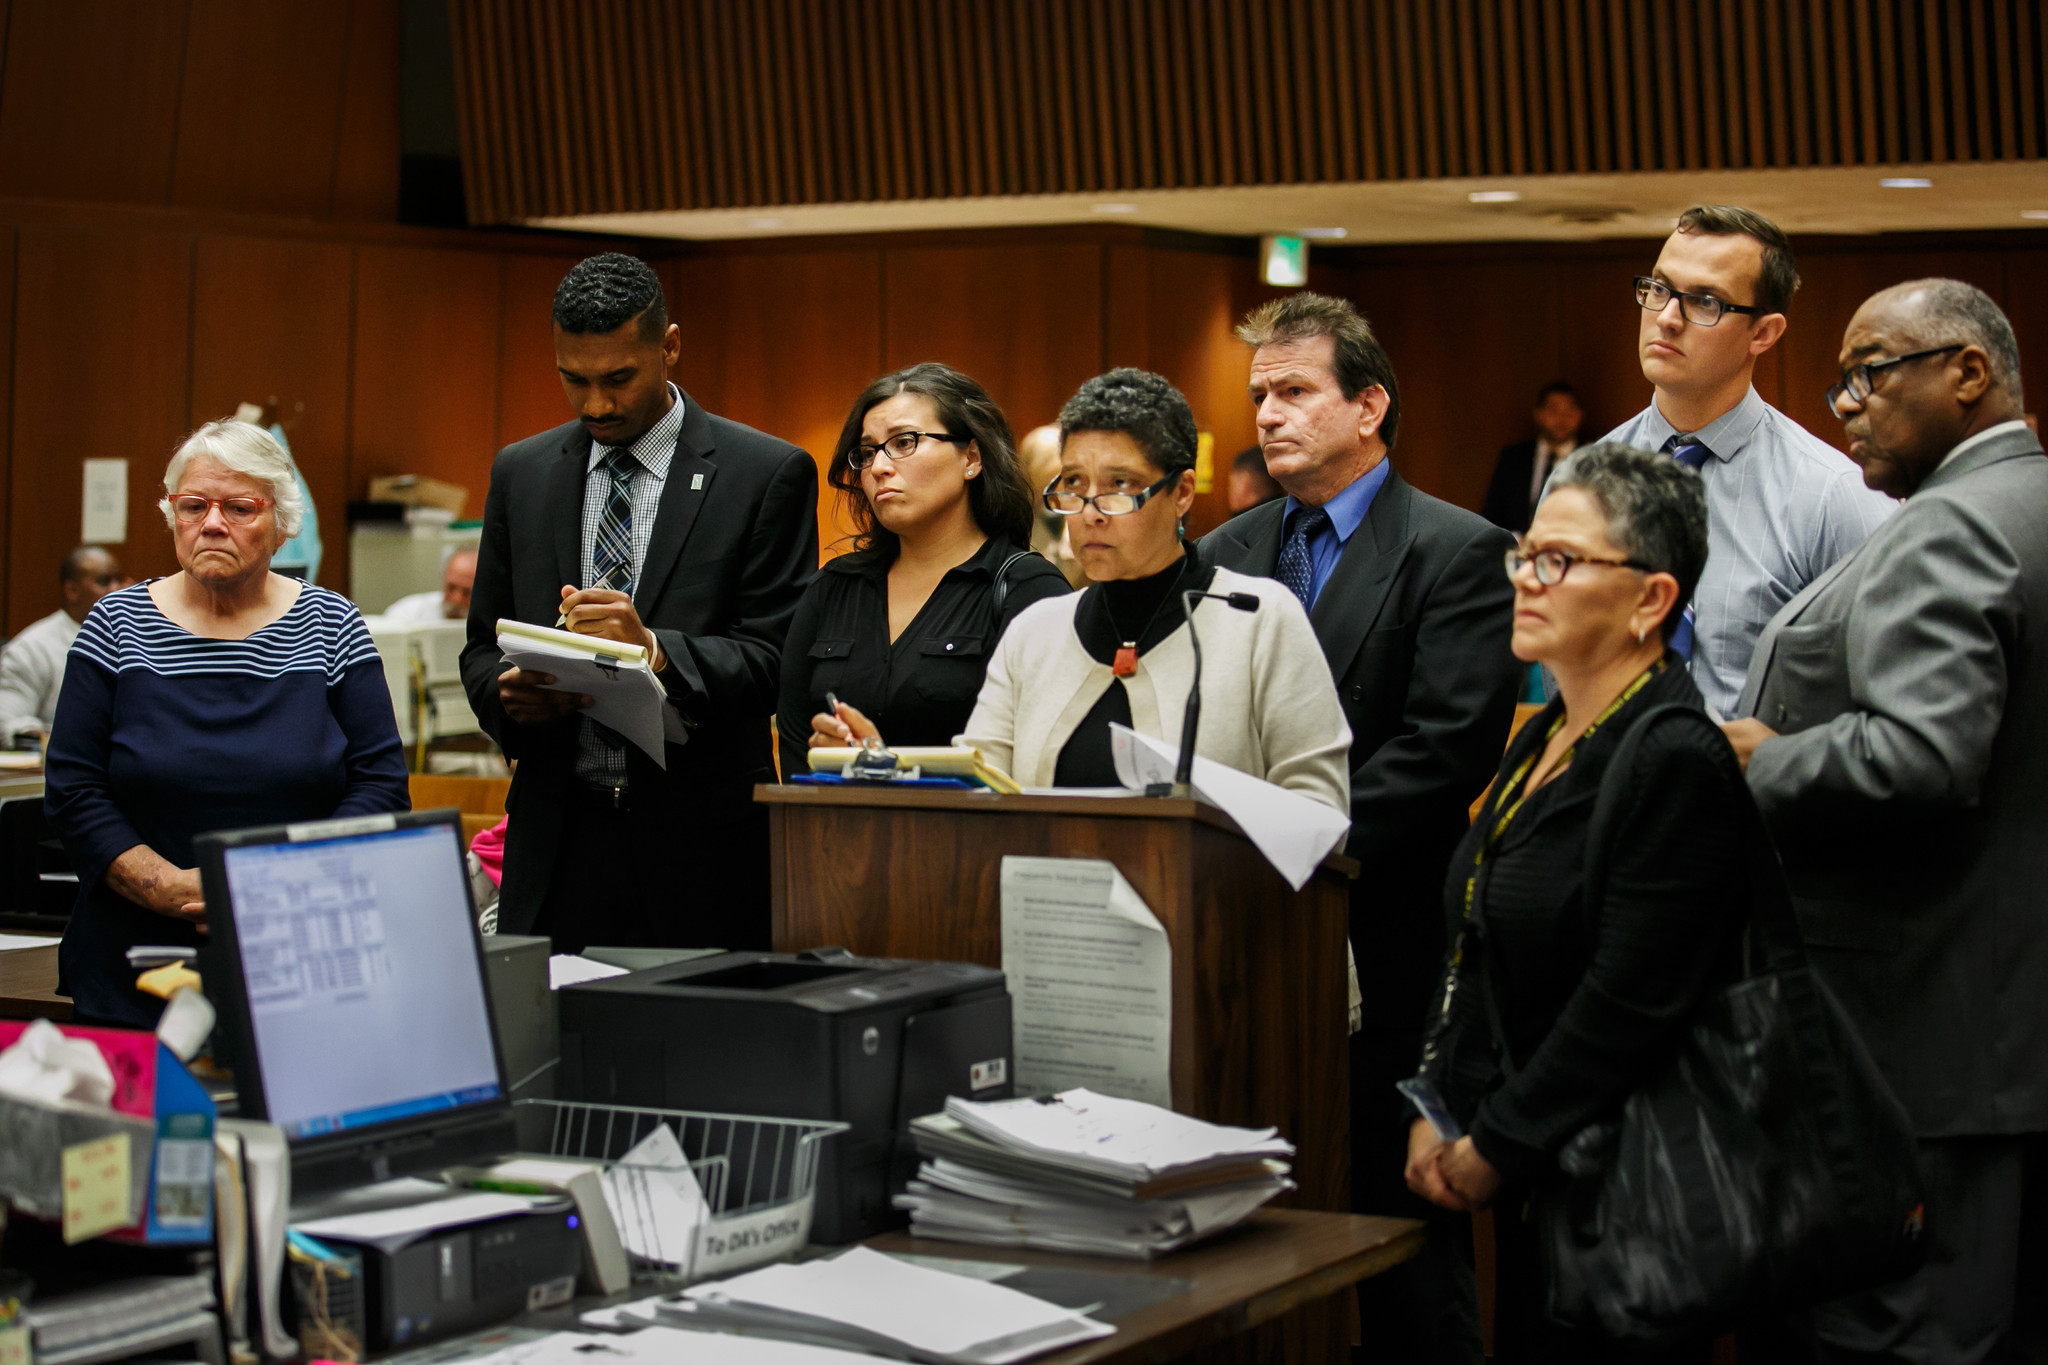 Social workers charged with child abuse in case involving torture and killing of Gabriel Fernandez, 8